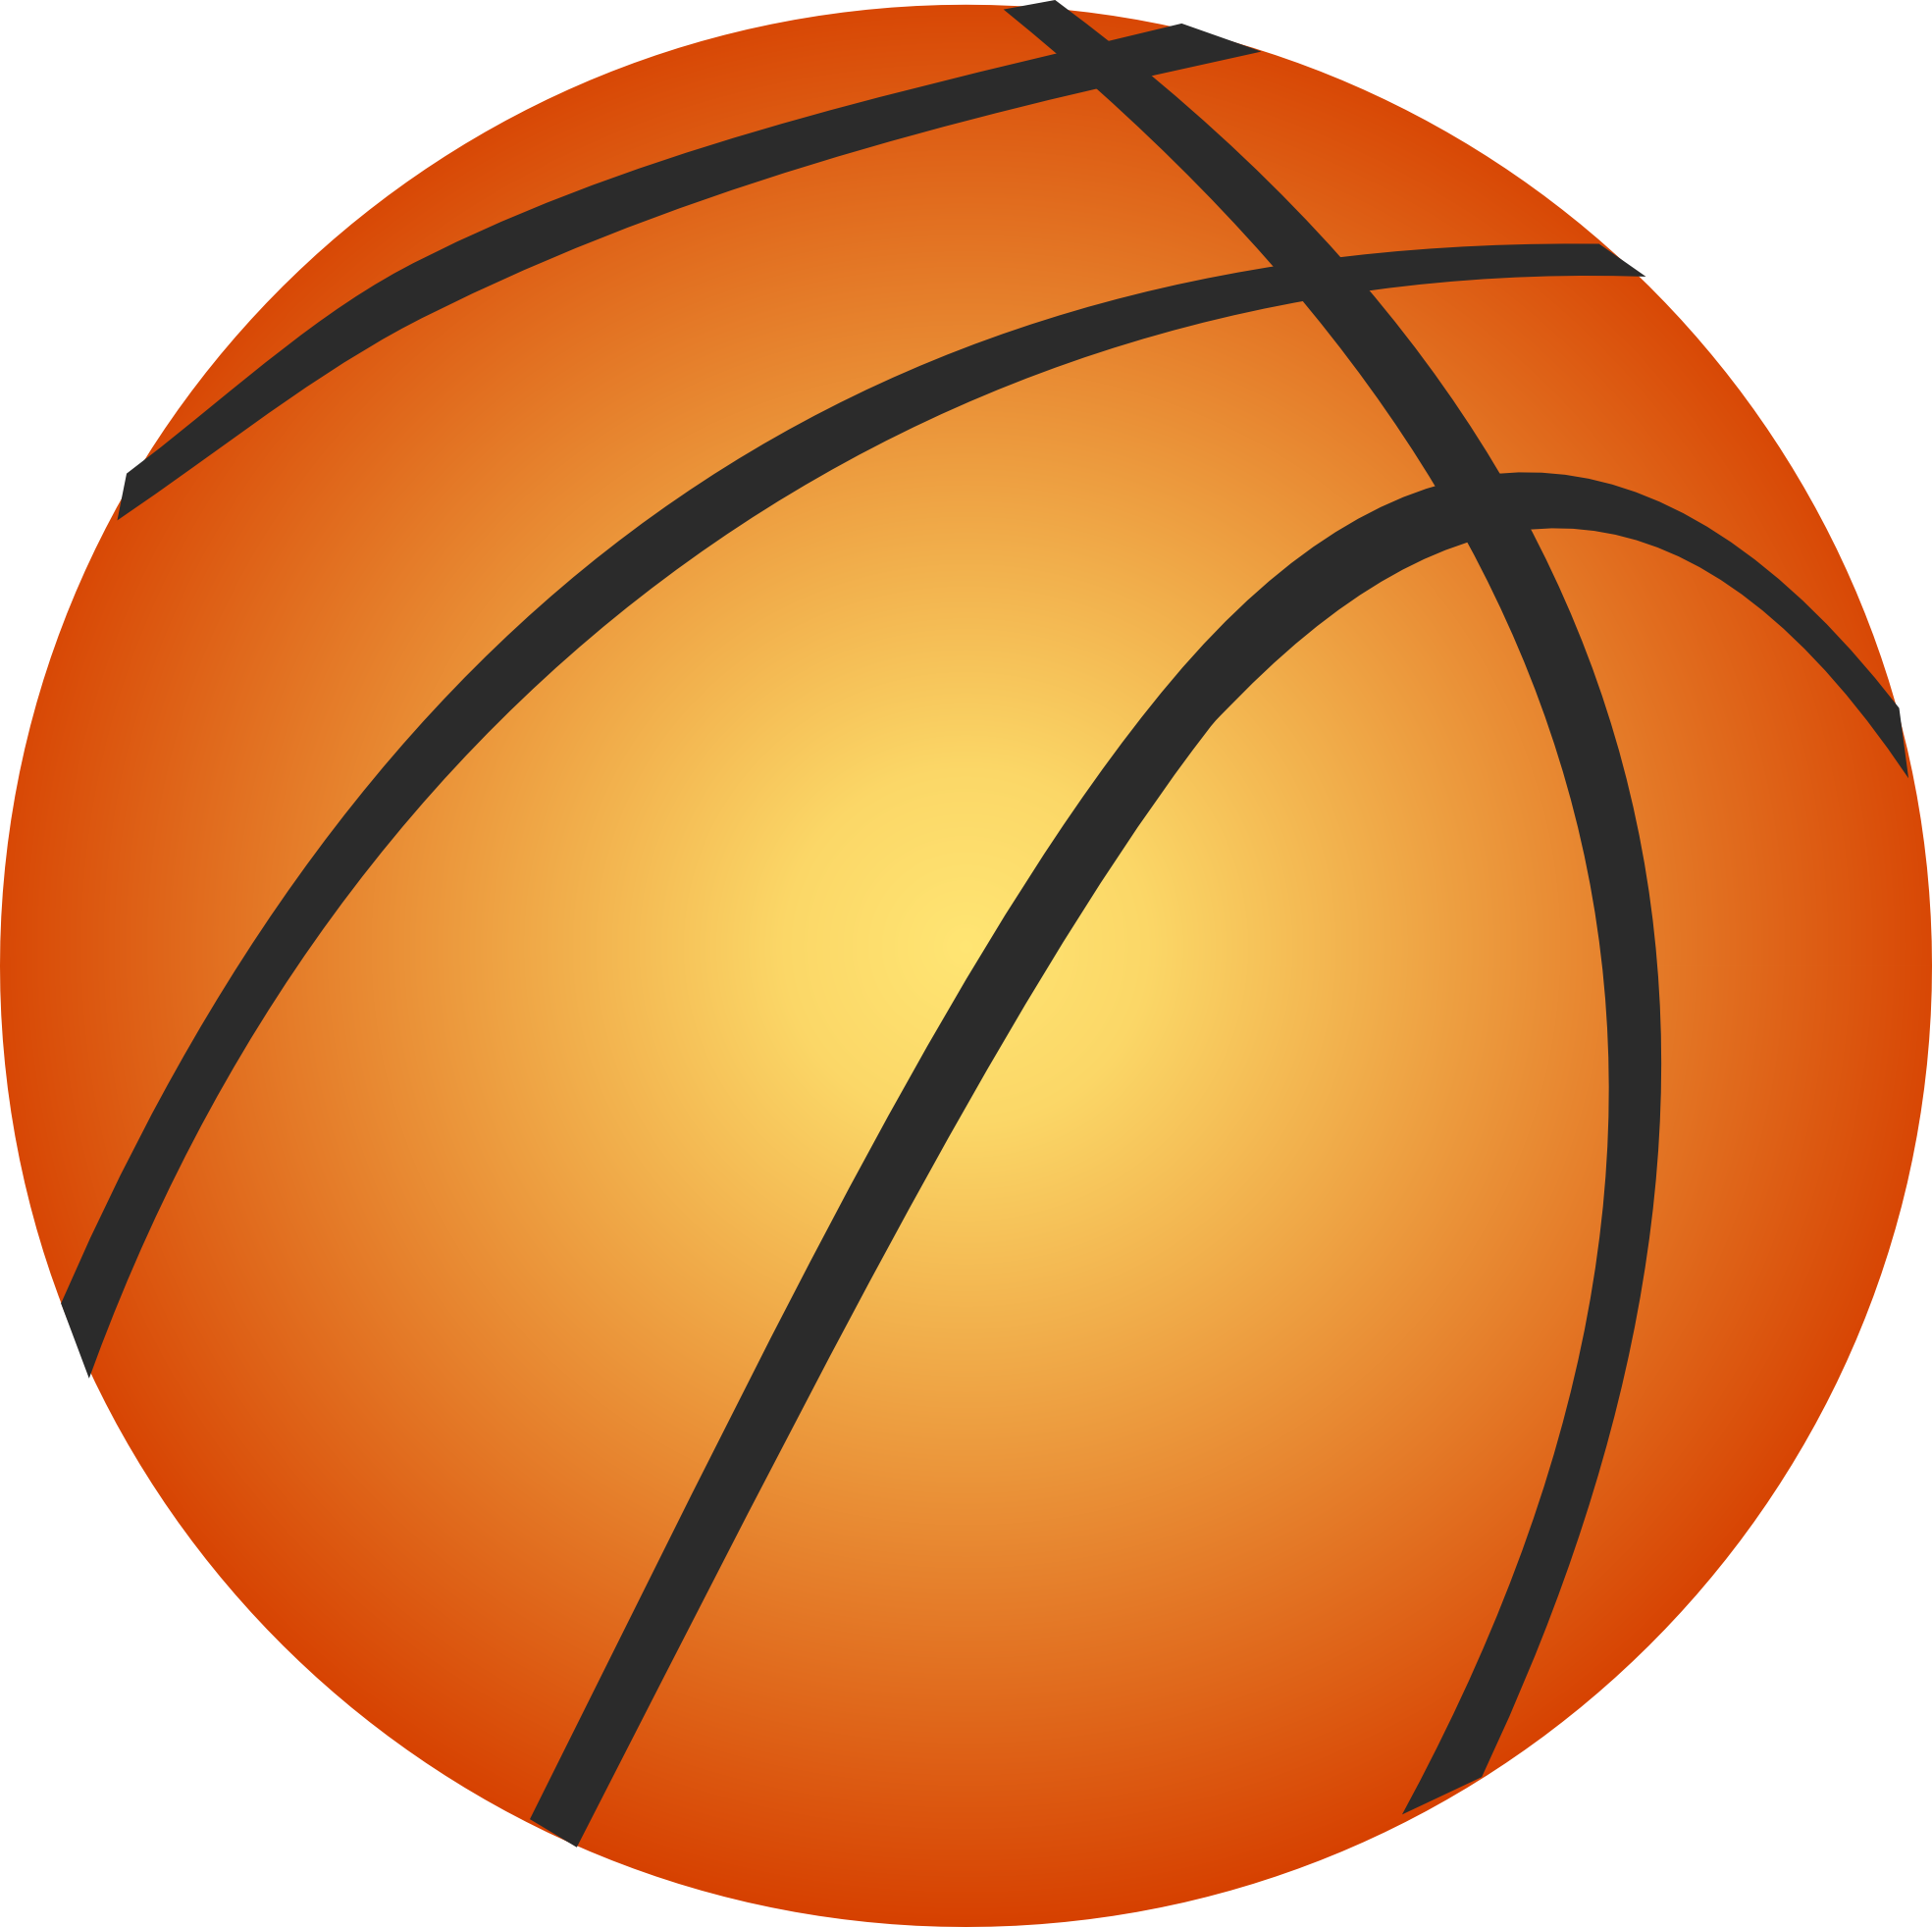 Ball clip transparent background. Collection of basketball